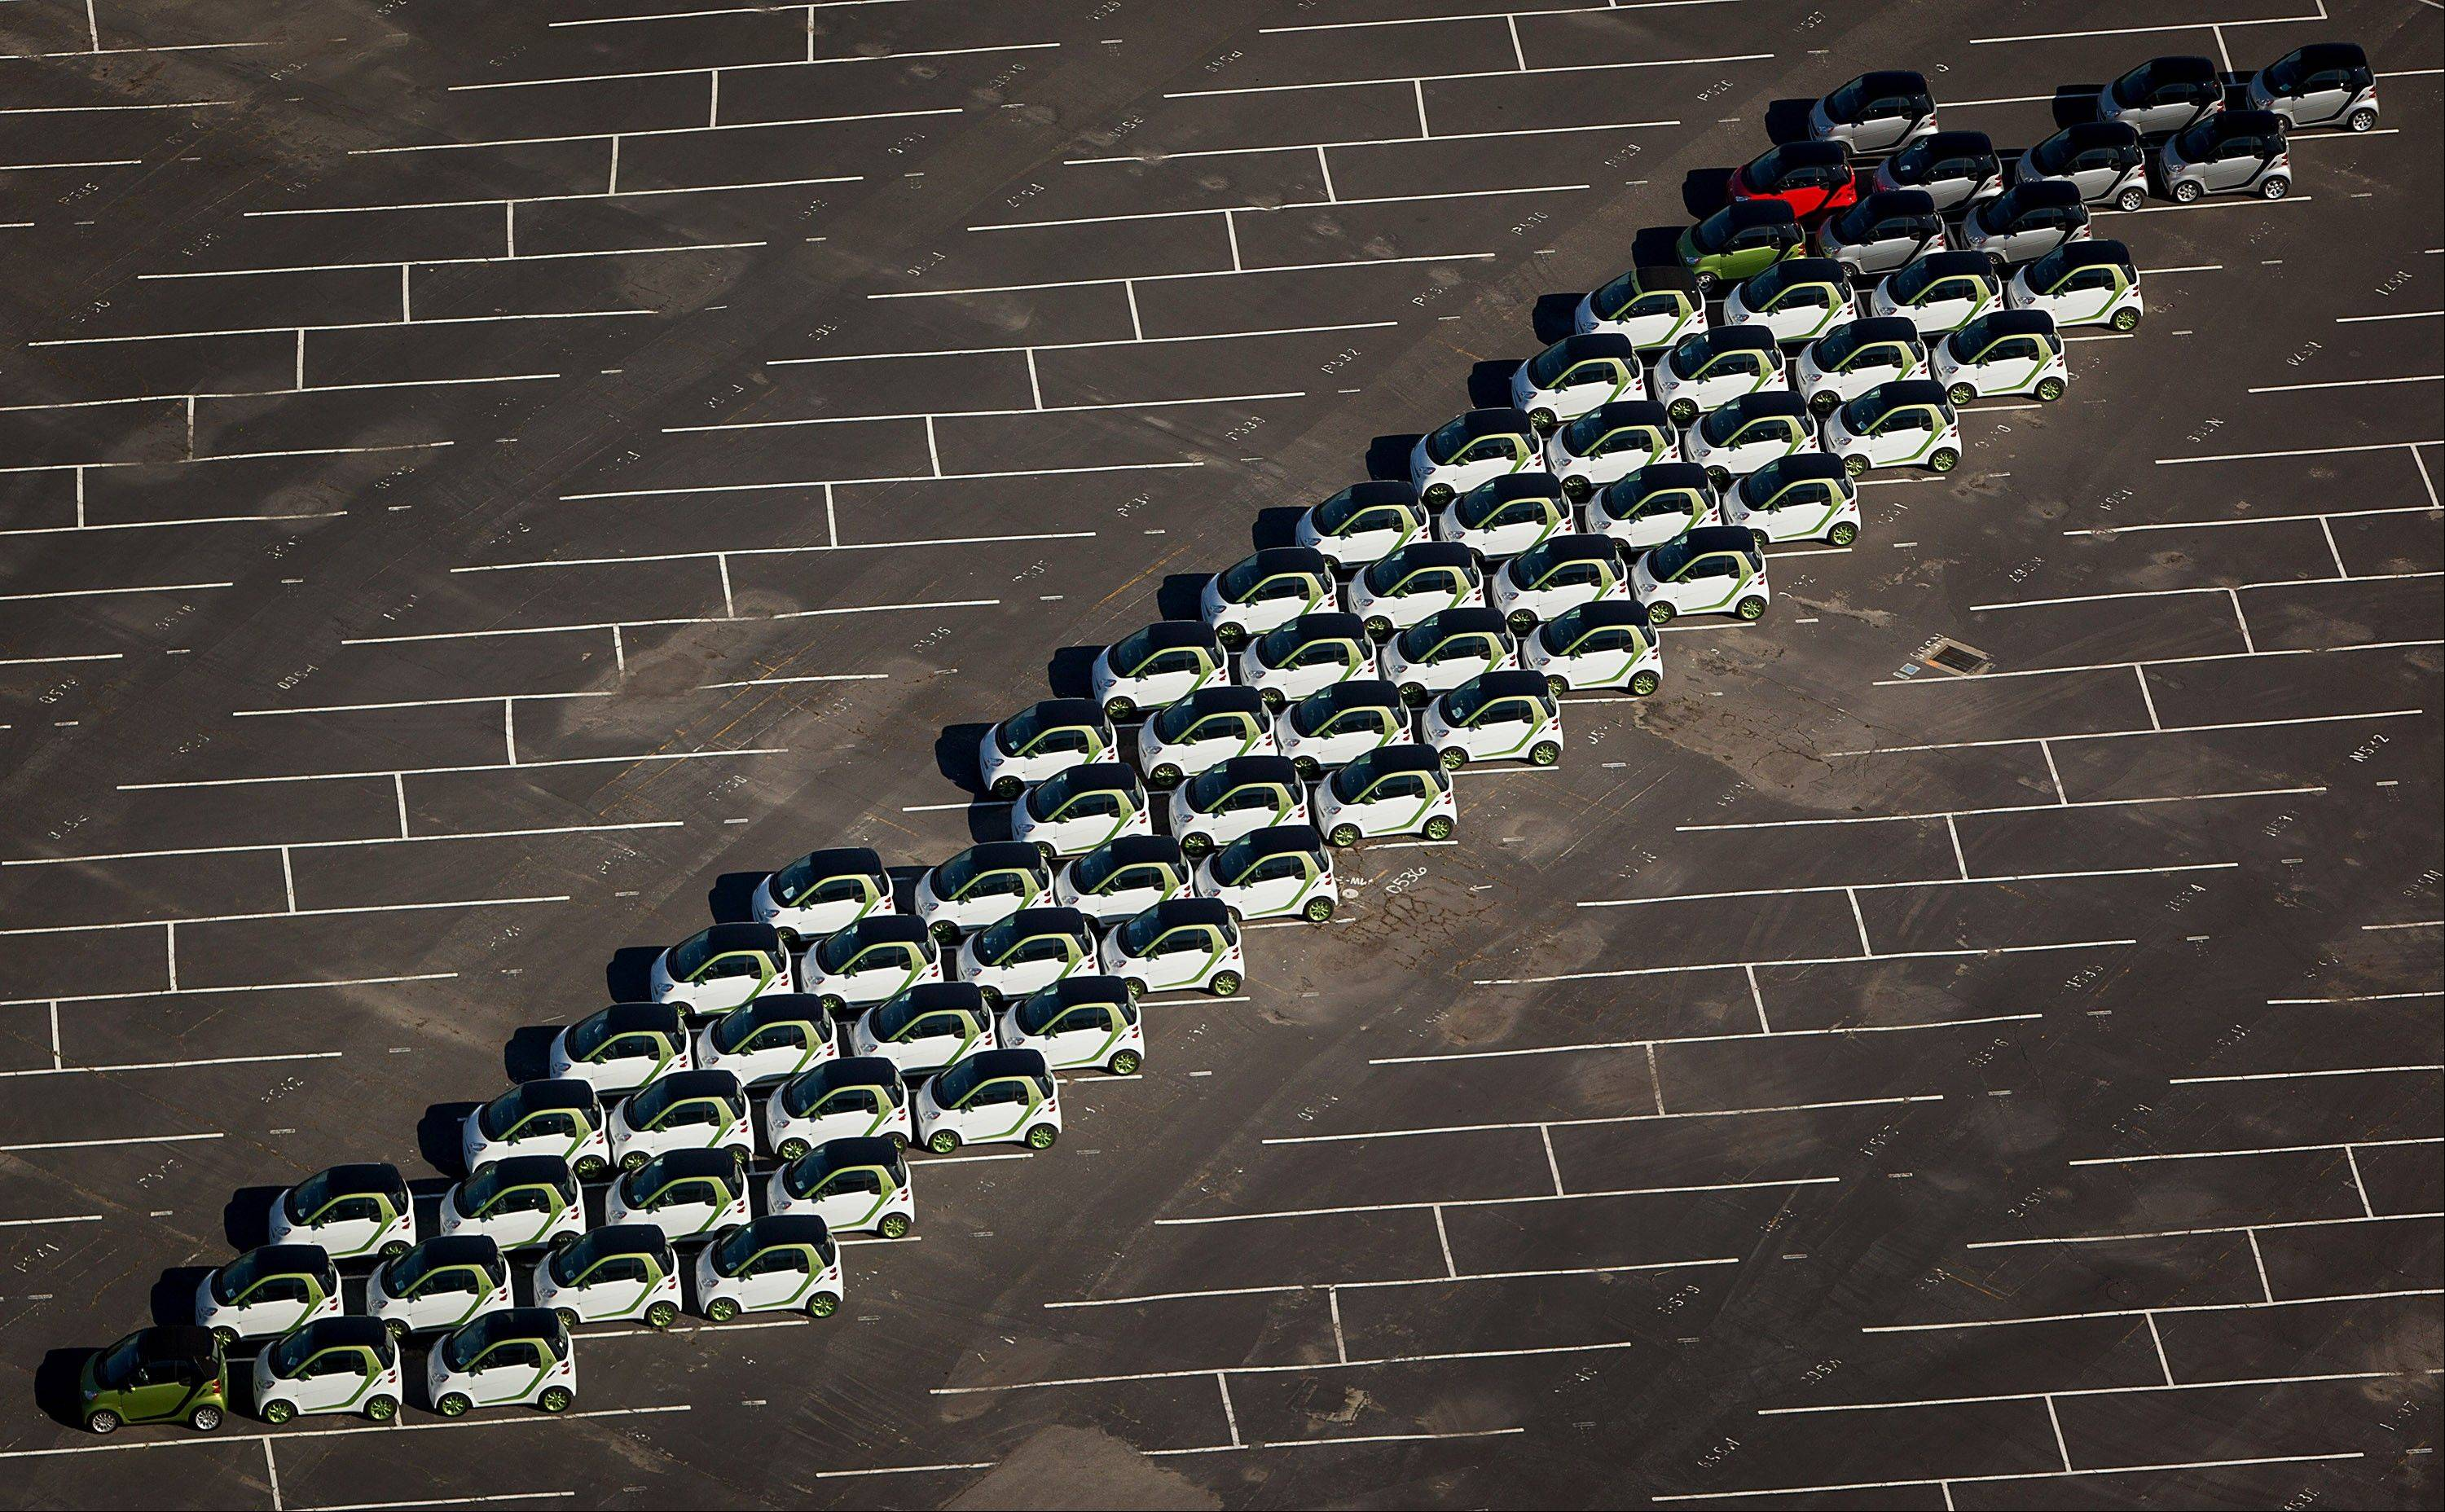 Daimler AG Smart Car vehicles sit lined up for dealer delivery at a distribution center outside the Port of Long Beach in Long Beach, California, U.S., on Tuesday, April 3, 2012. Job gains and buyers who put off car purchases during the recession are driving the fastest three-month auto-sales pace in four years, even as average U.S. unleaded gasoline prices rose 20 percent this year through the end of March.